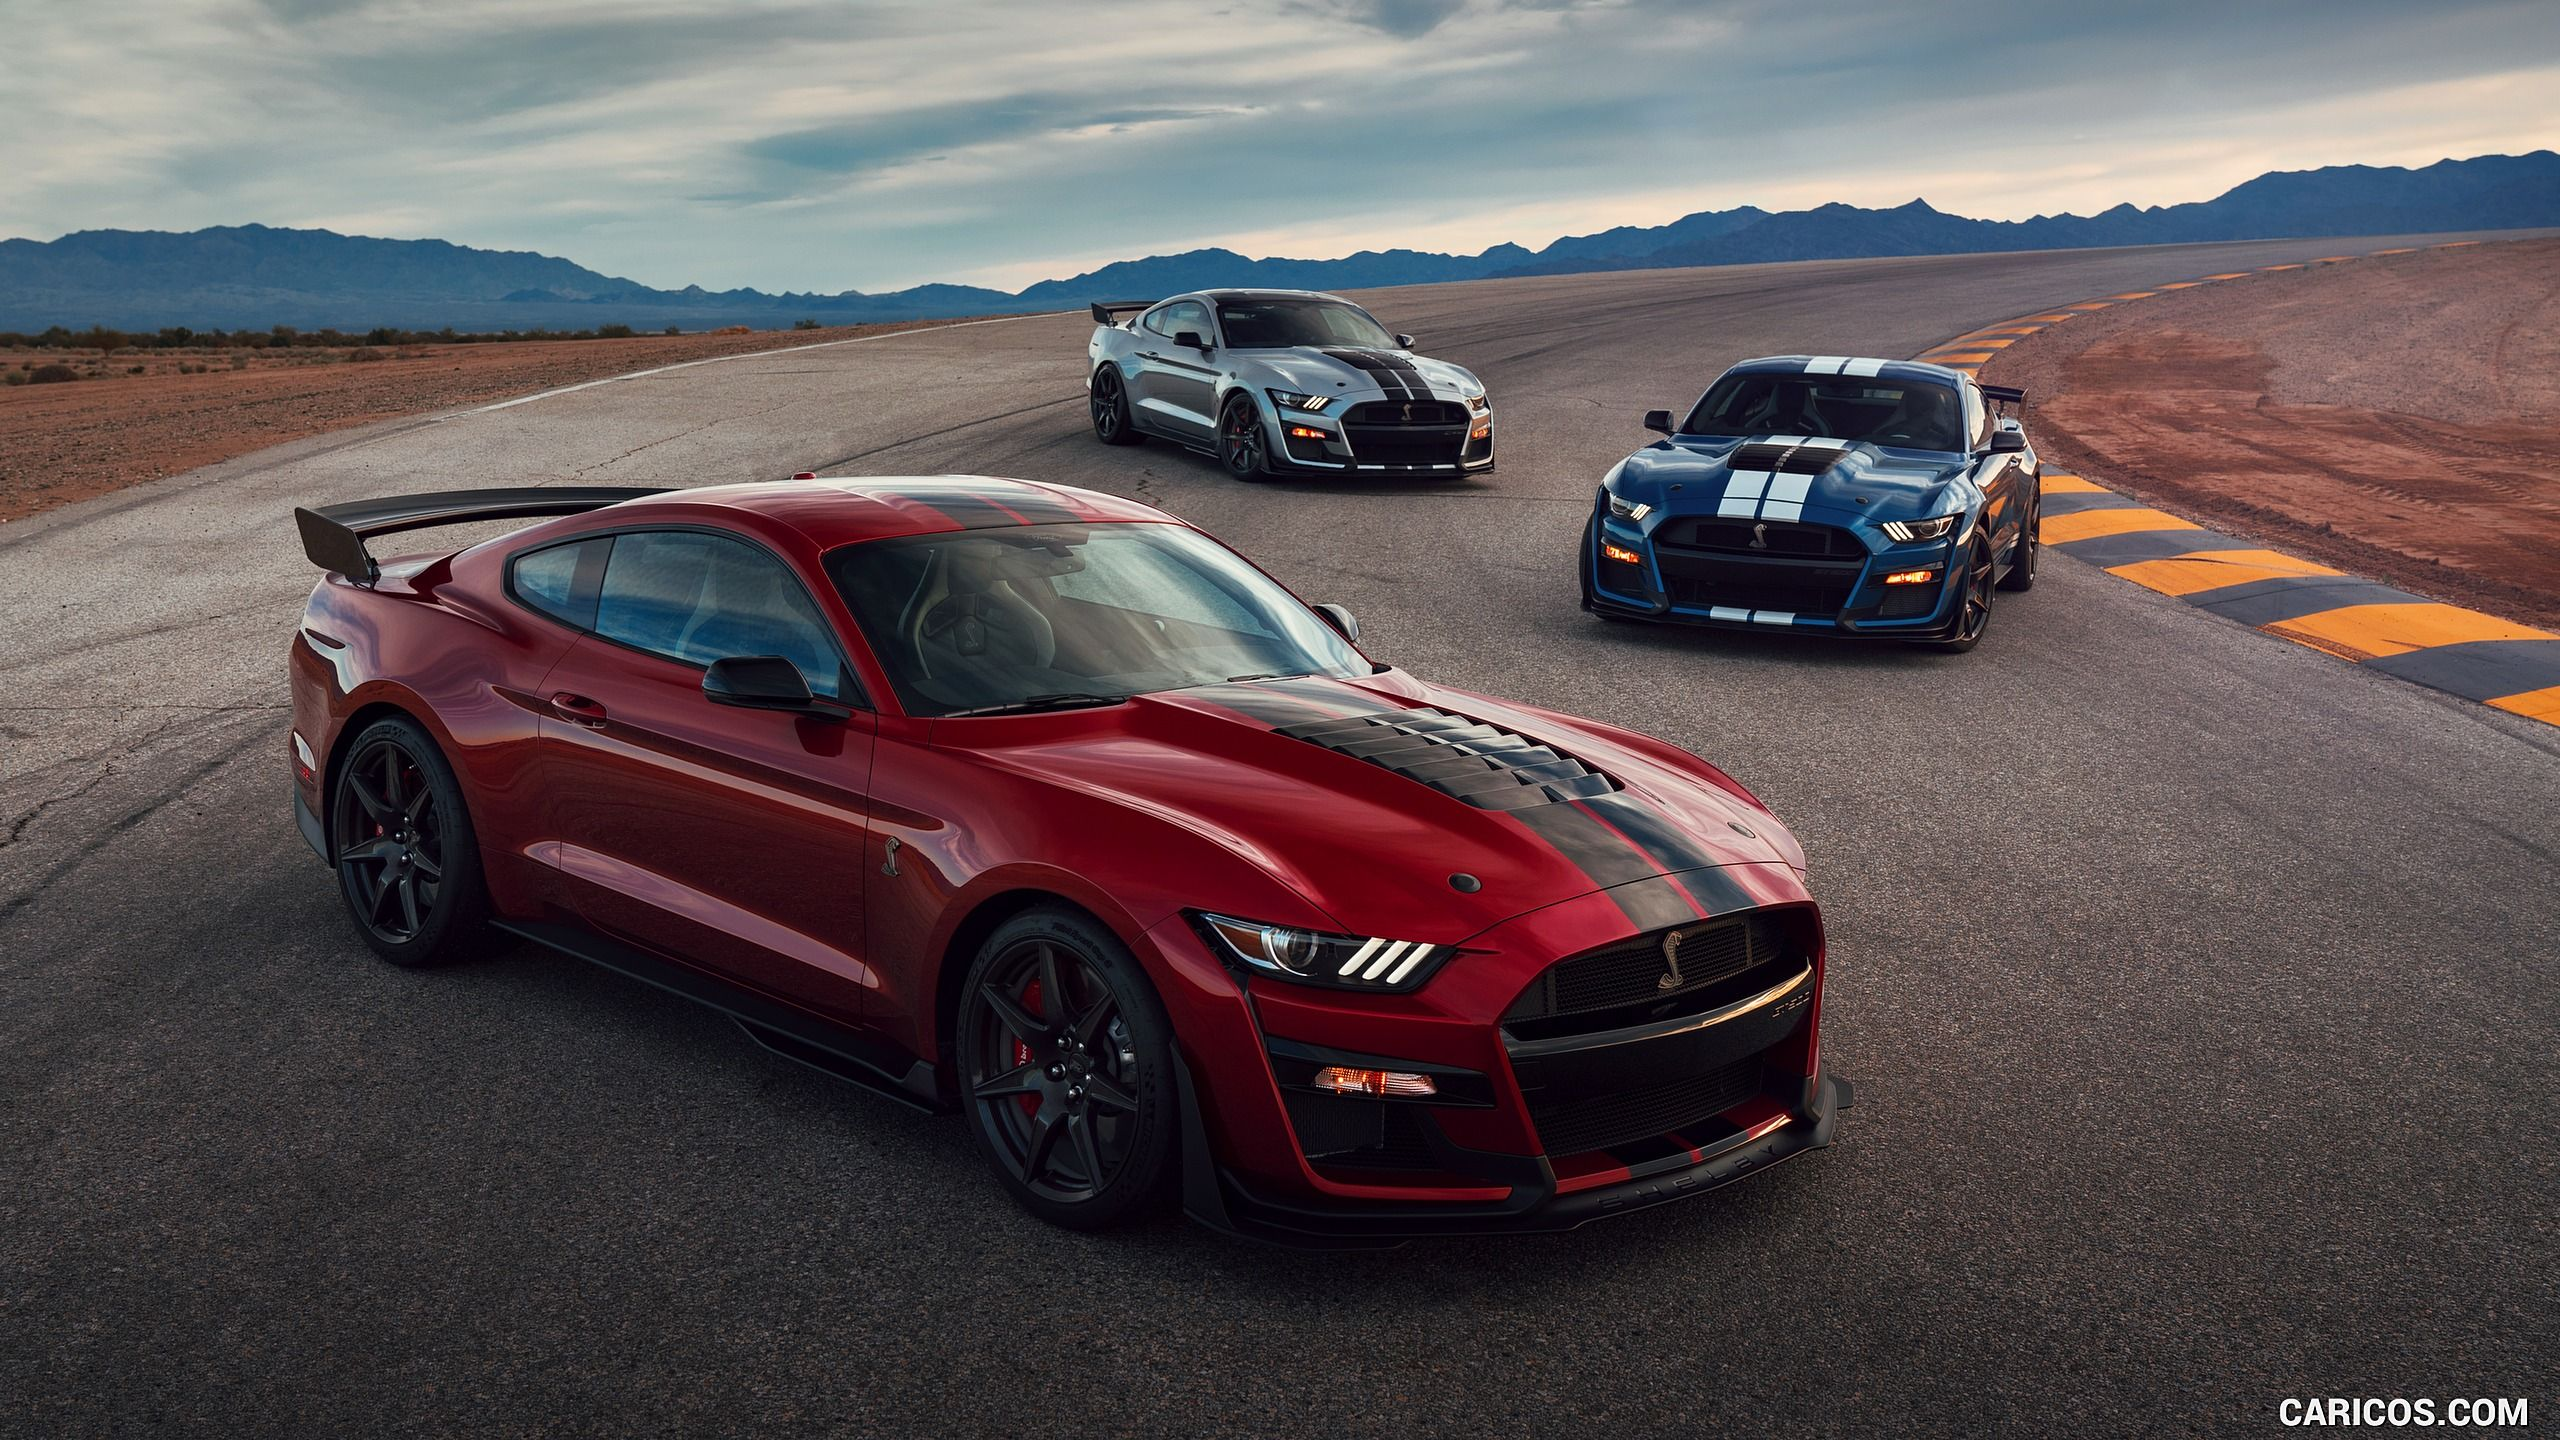 Mustang 2020 Wallpapers   Top Mustang 2020 Backgrounds 2560x1440